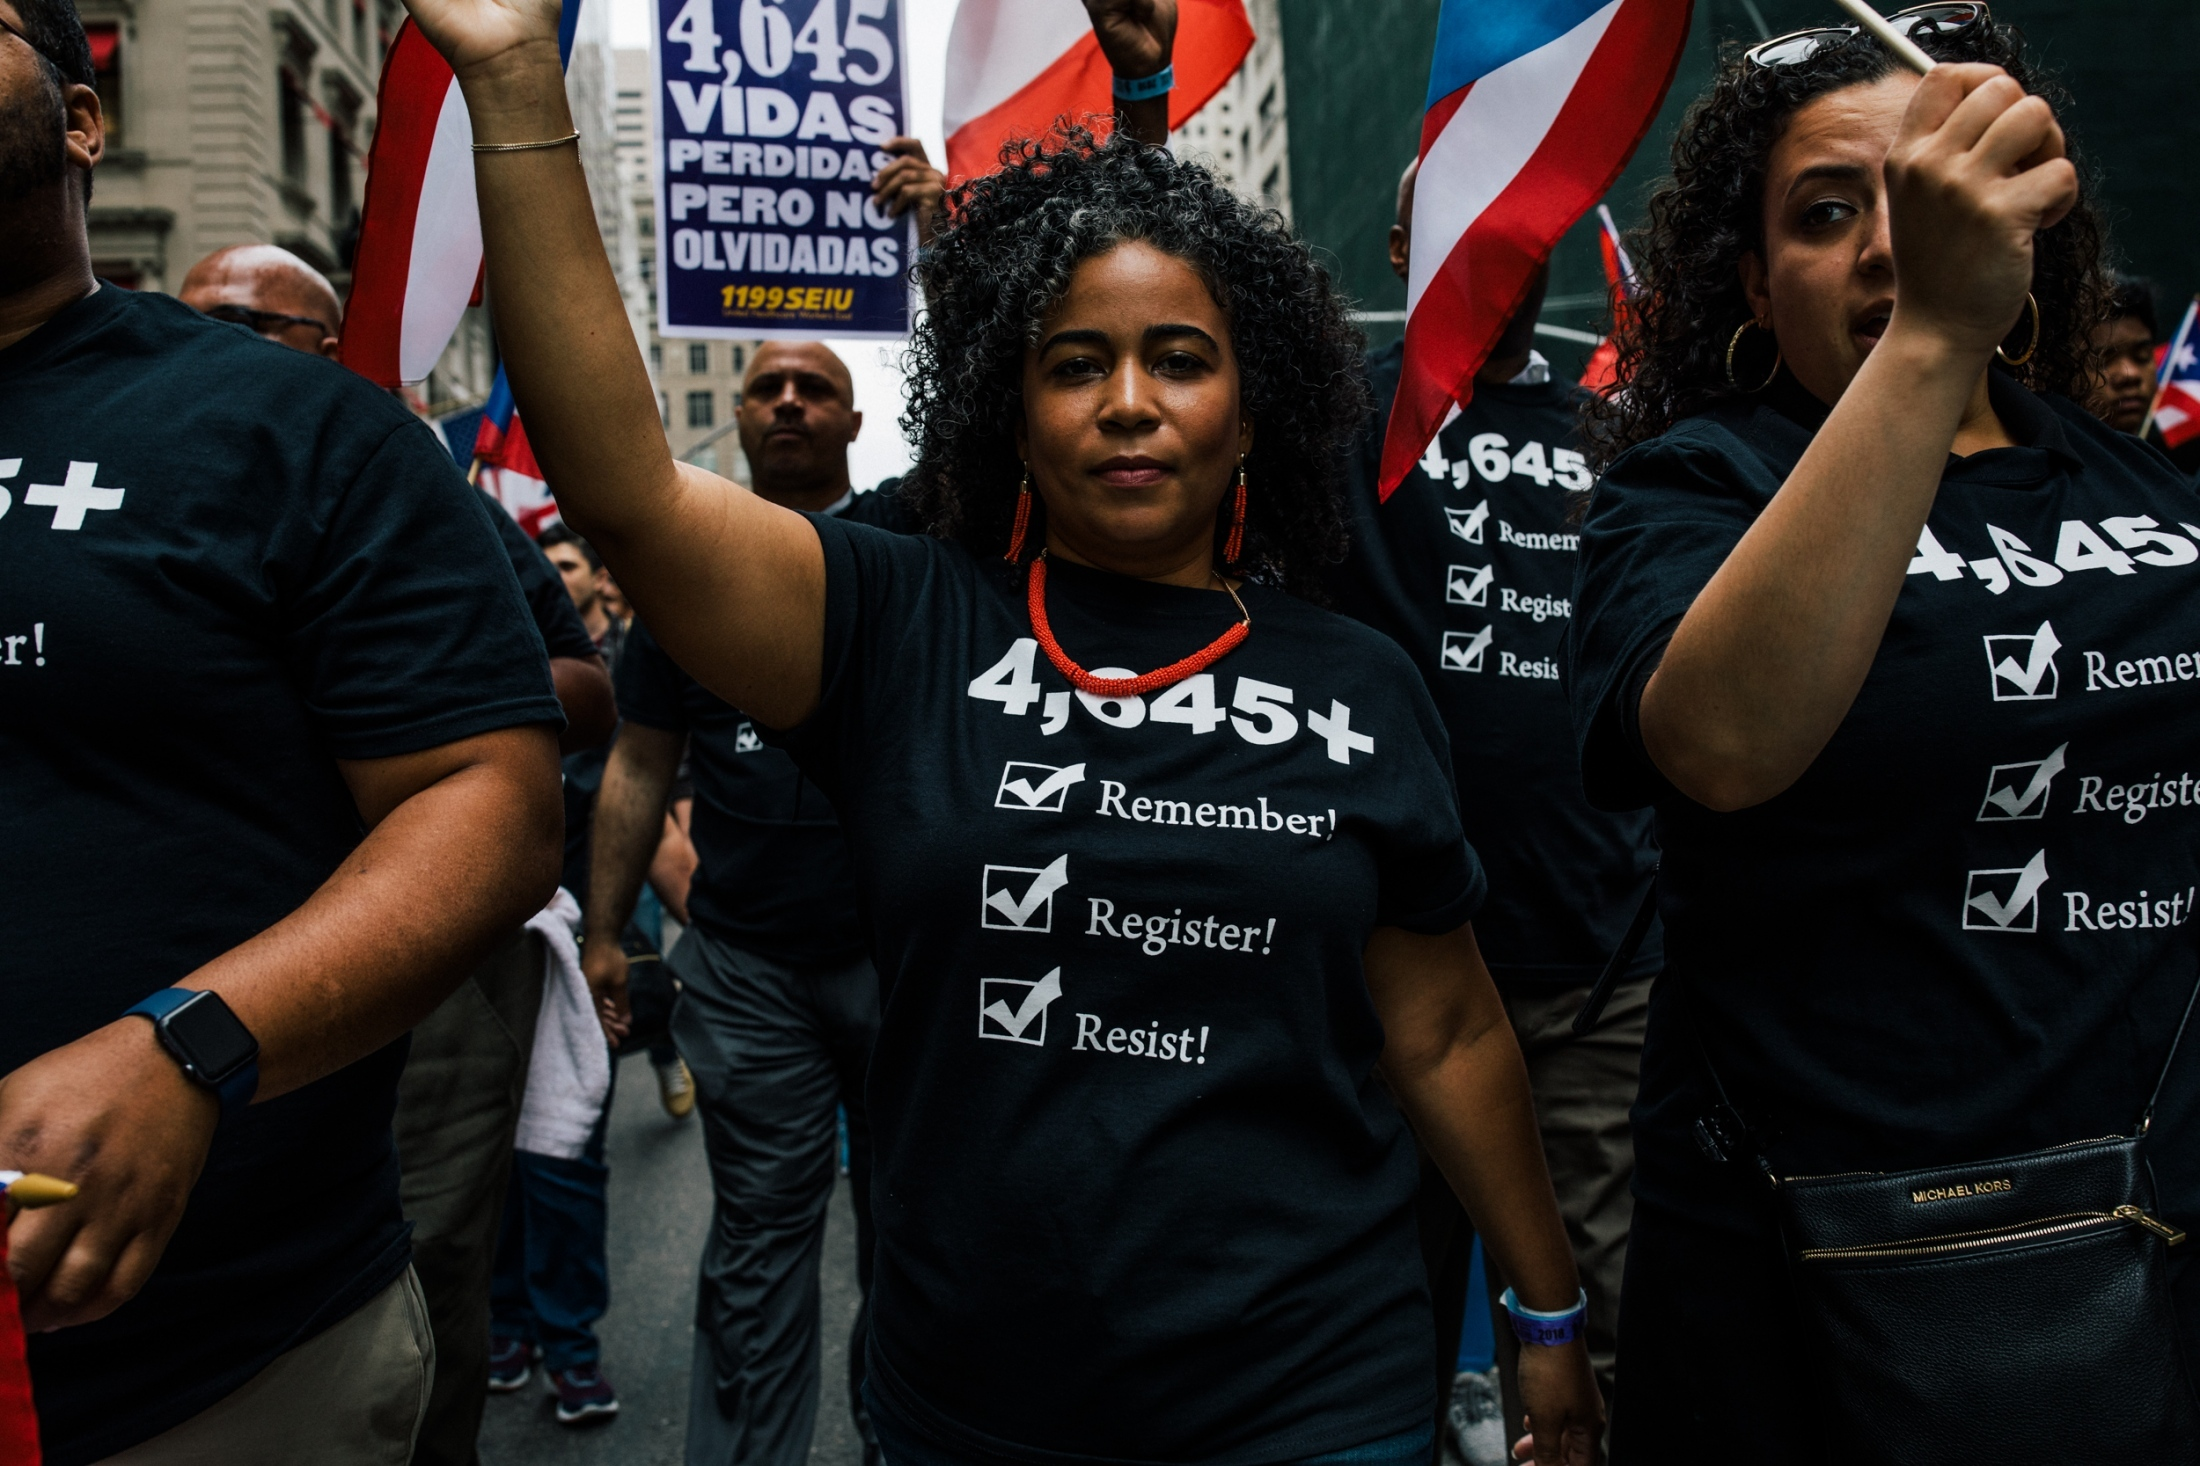 Marchers led by Rubén Díaz Jr., Bronx borough president, voice concerns about the recent death toll estimate and encourage the crowd to register to vote as they march on Fifth Avenue in Manhattan, New York, U.S. June 10, 2018.